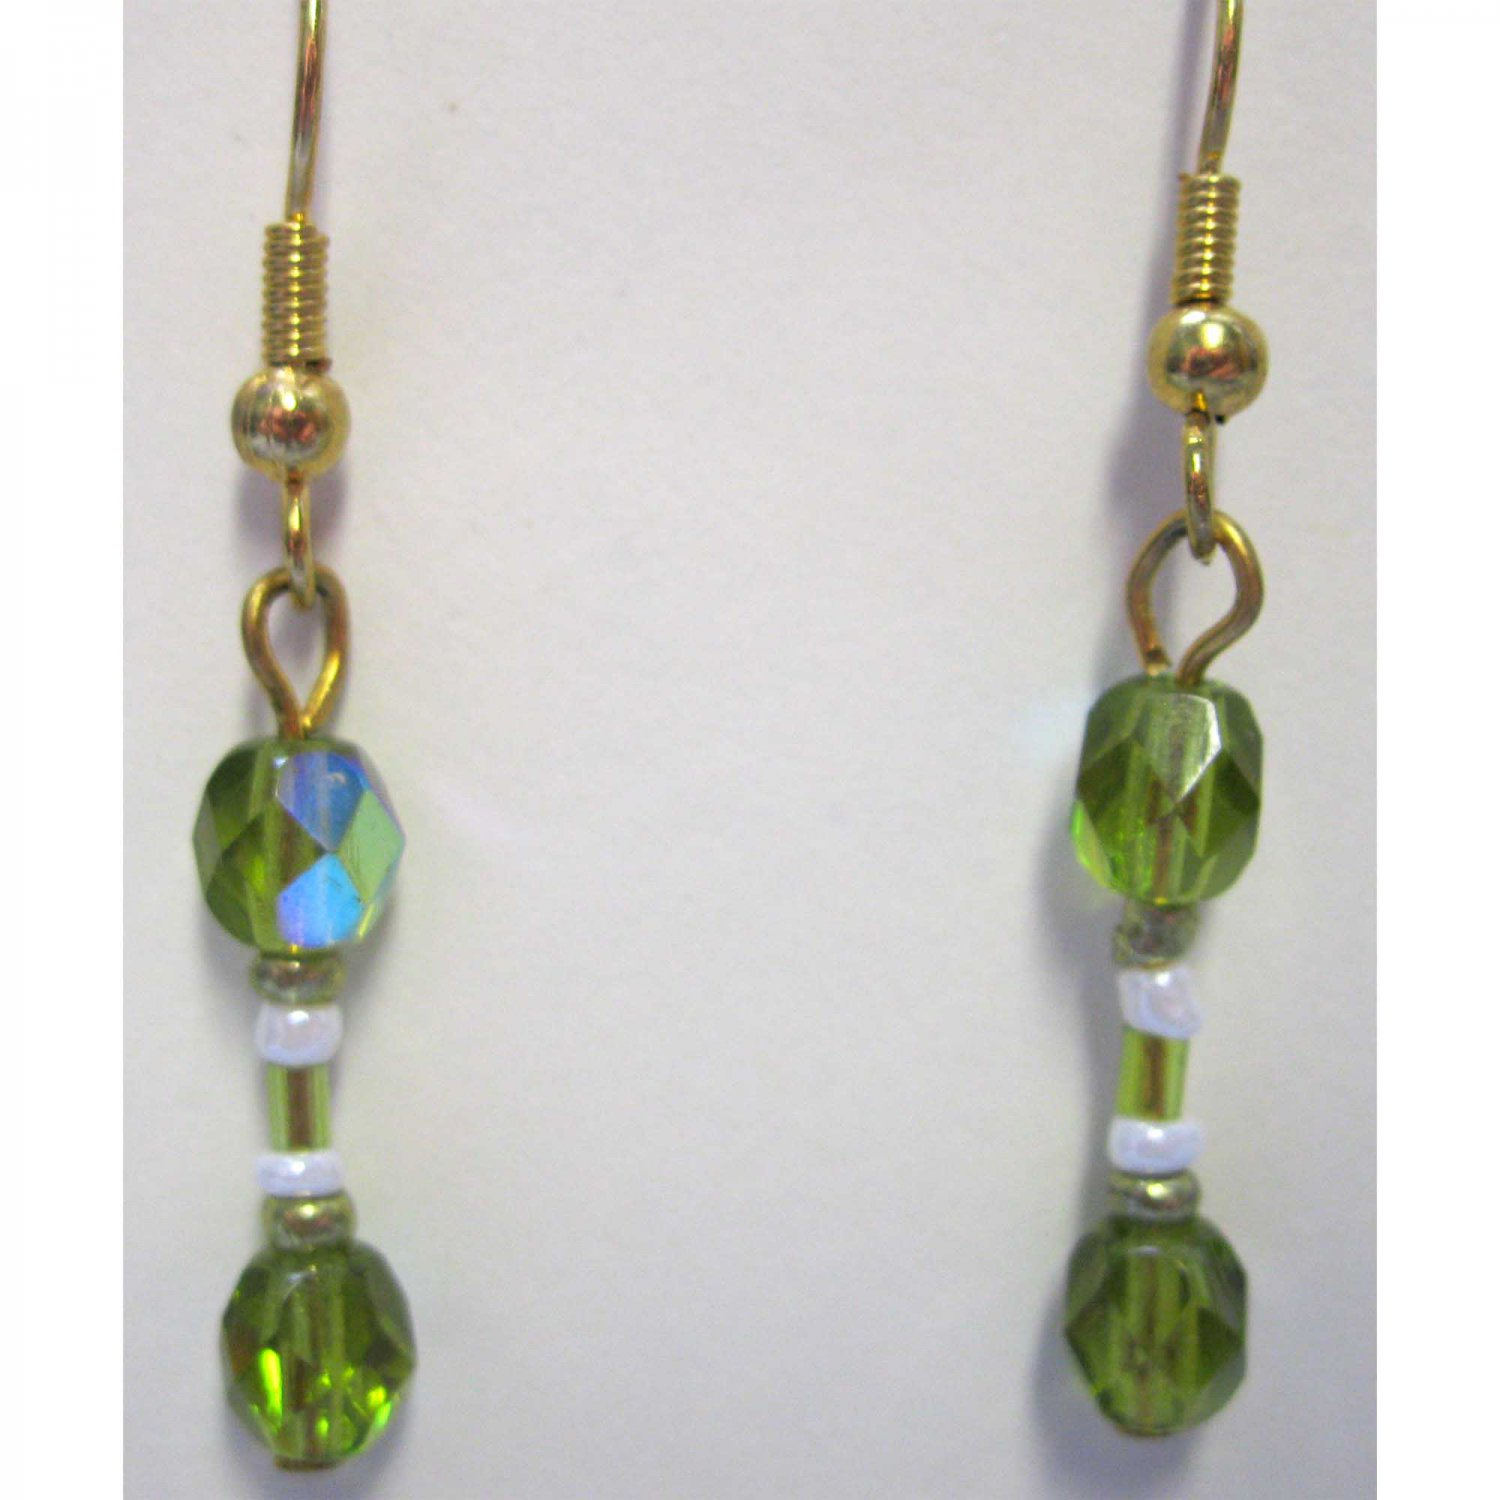 Gold and green earrings fashion drop jewelry